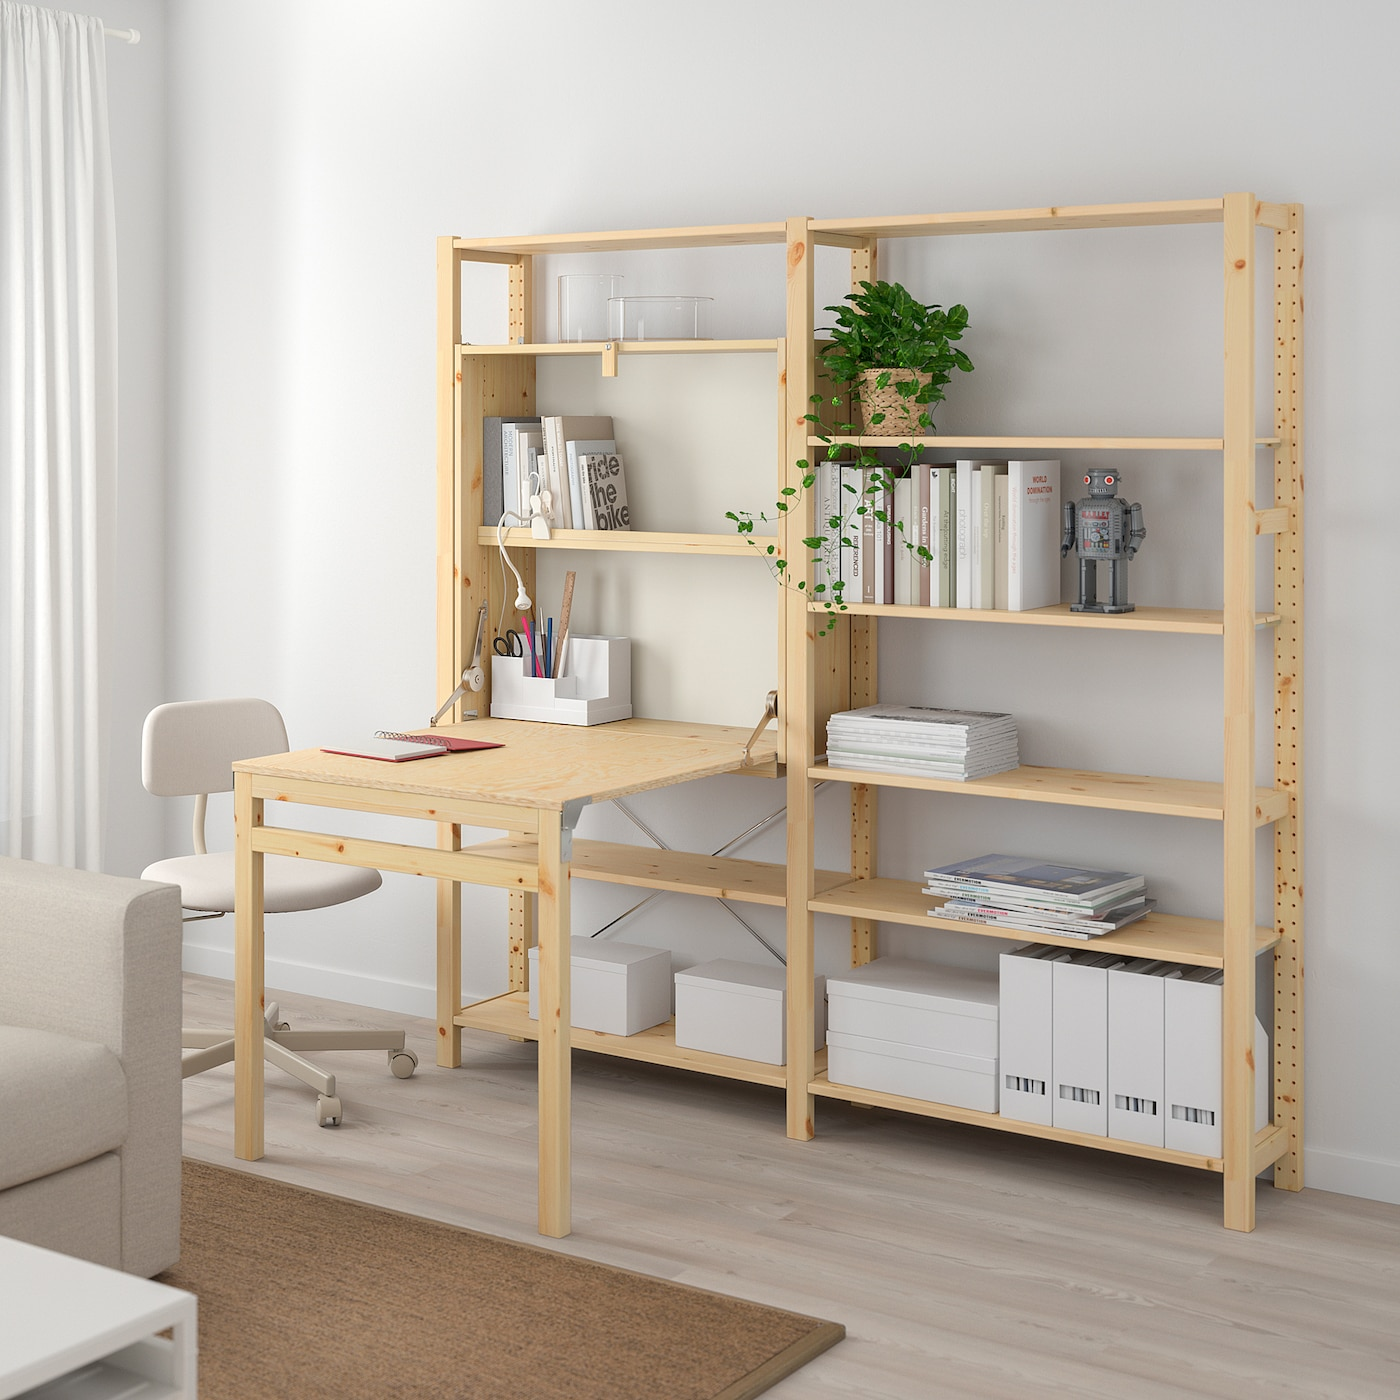 Ivar Shelving Unit with Foldable Table